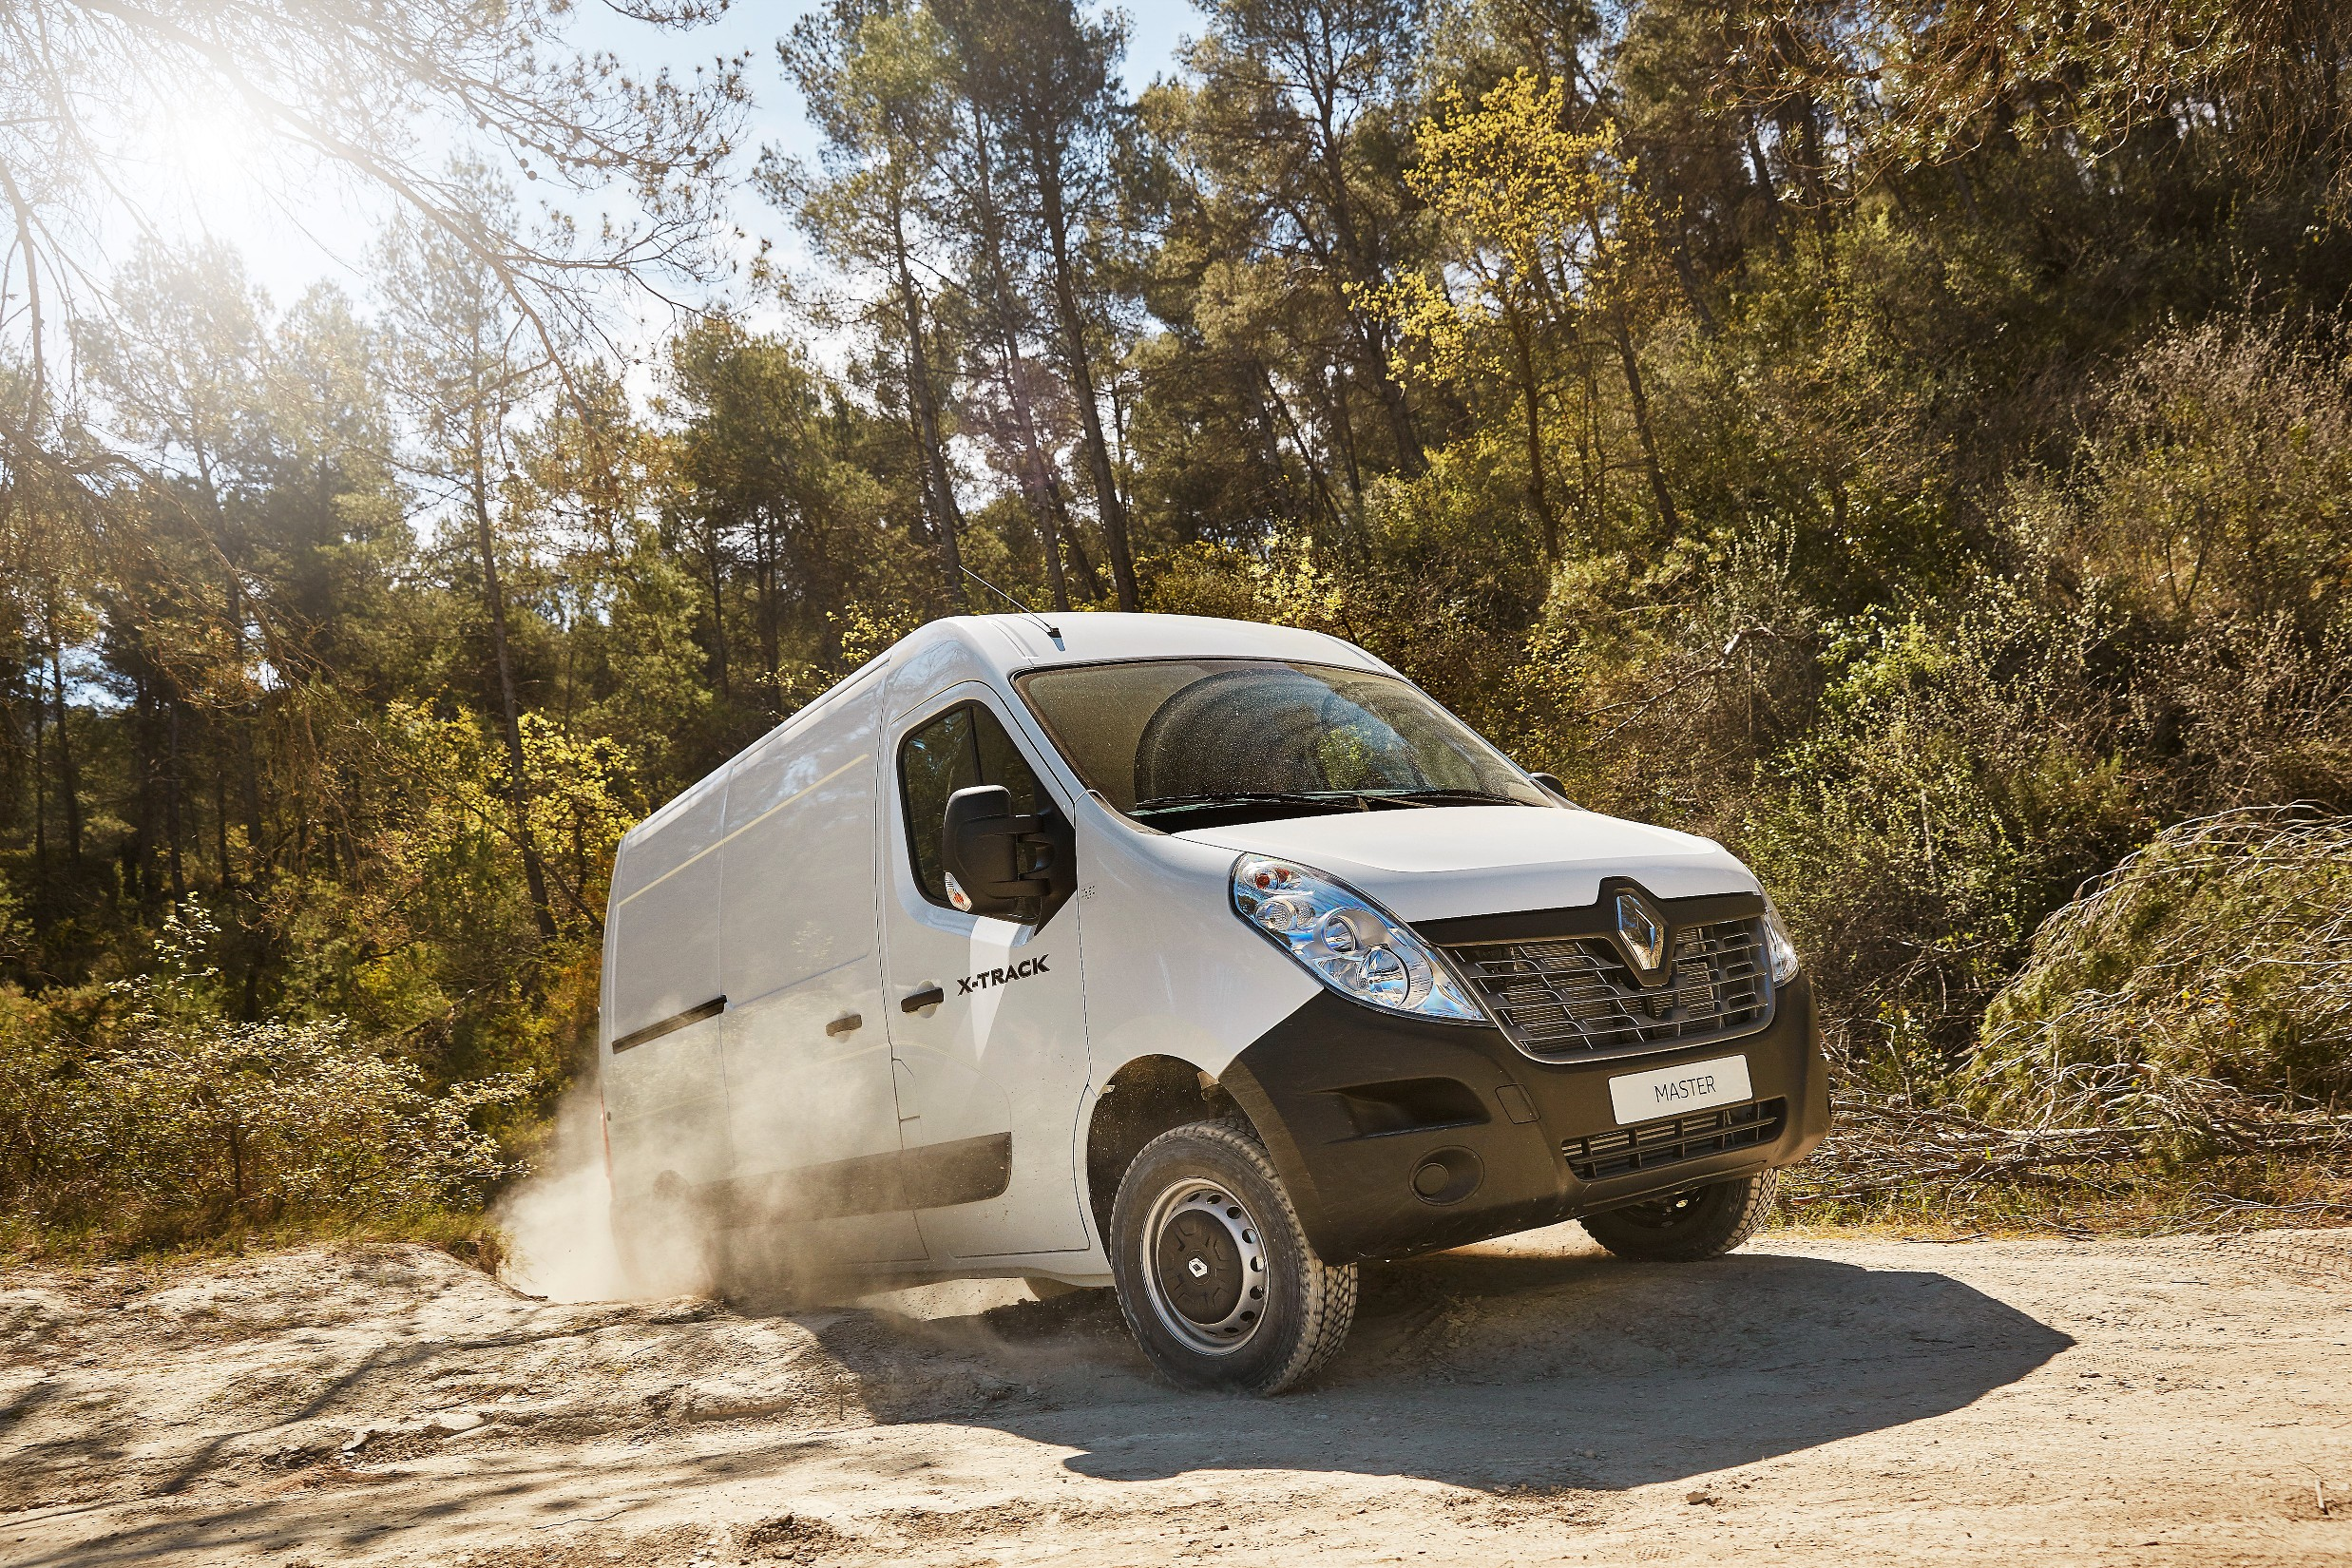 3.renault master xtrack. credits - yannick brossard